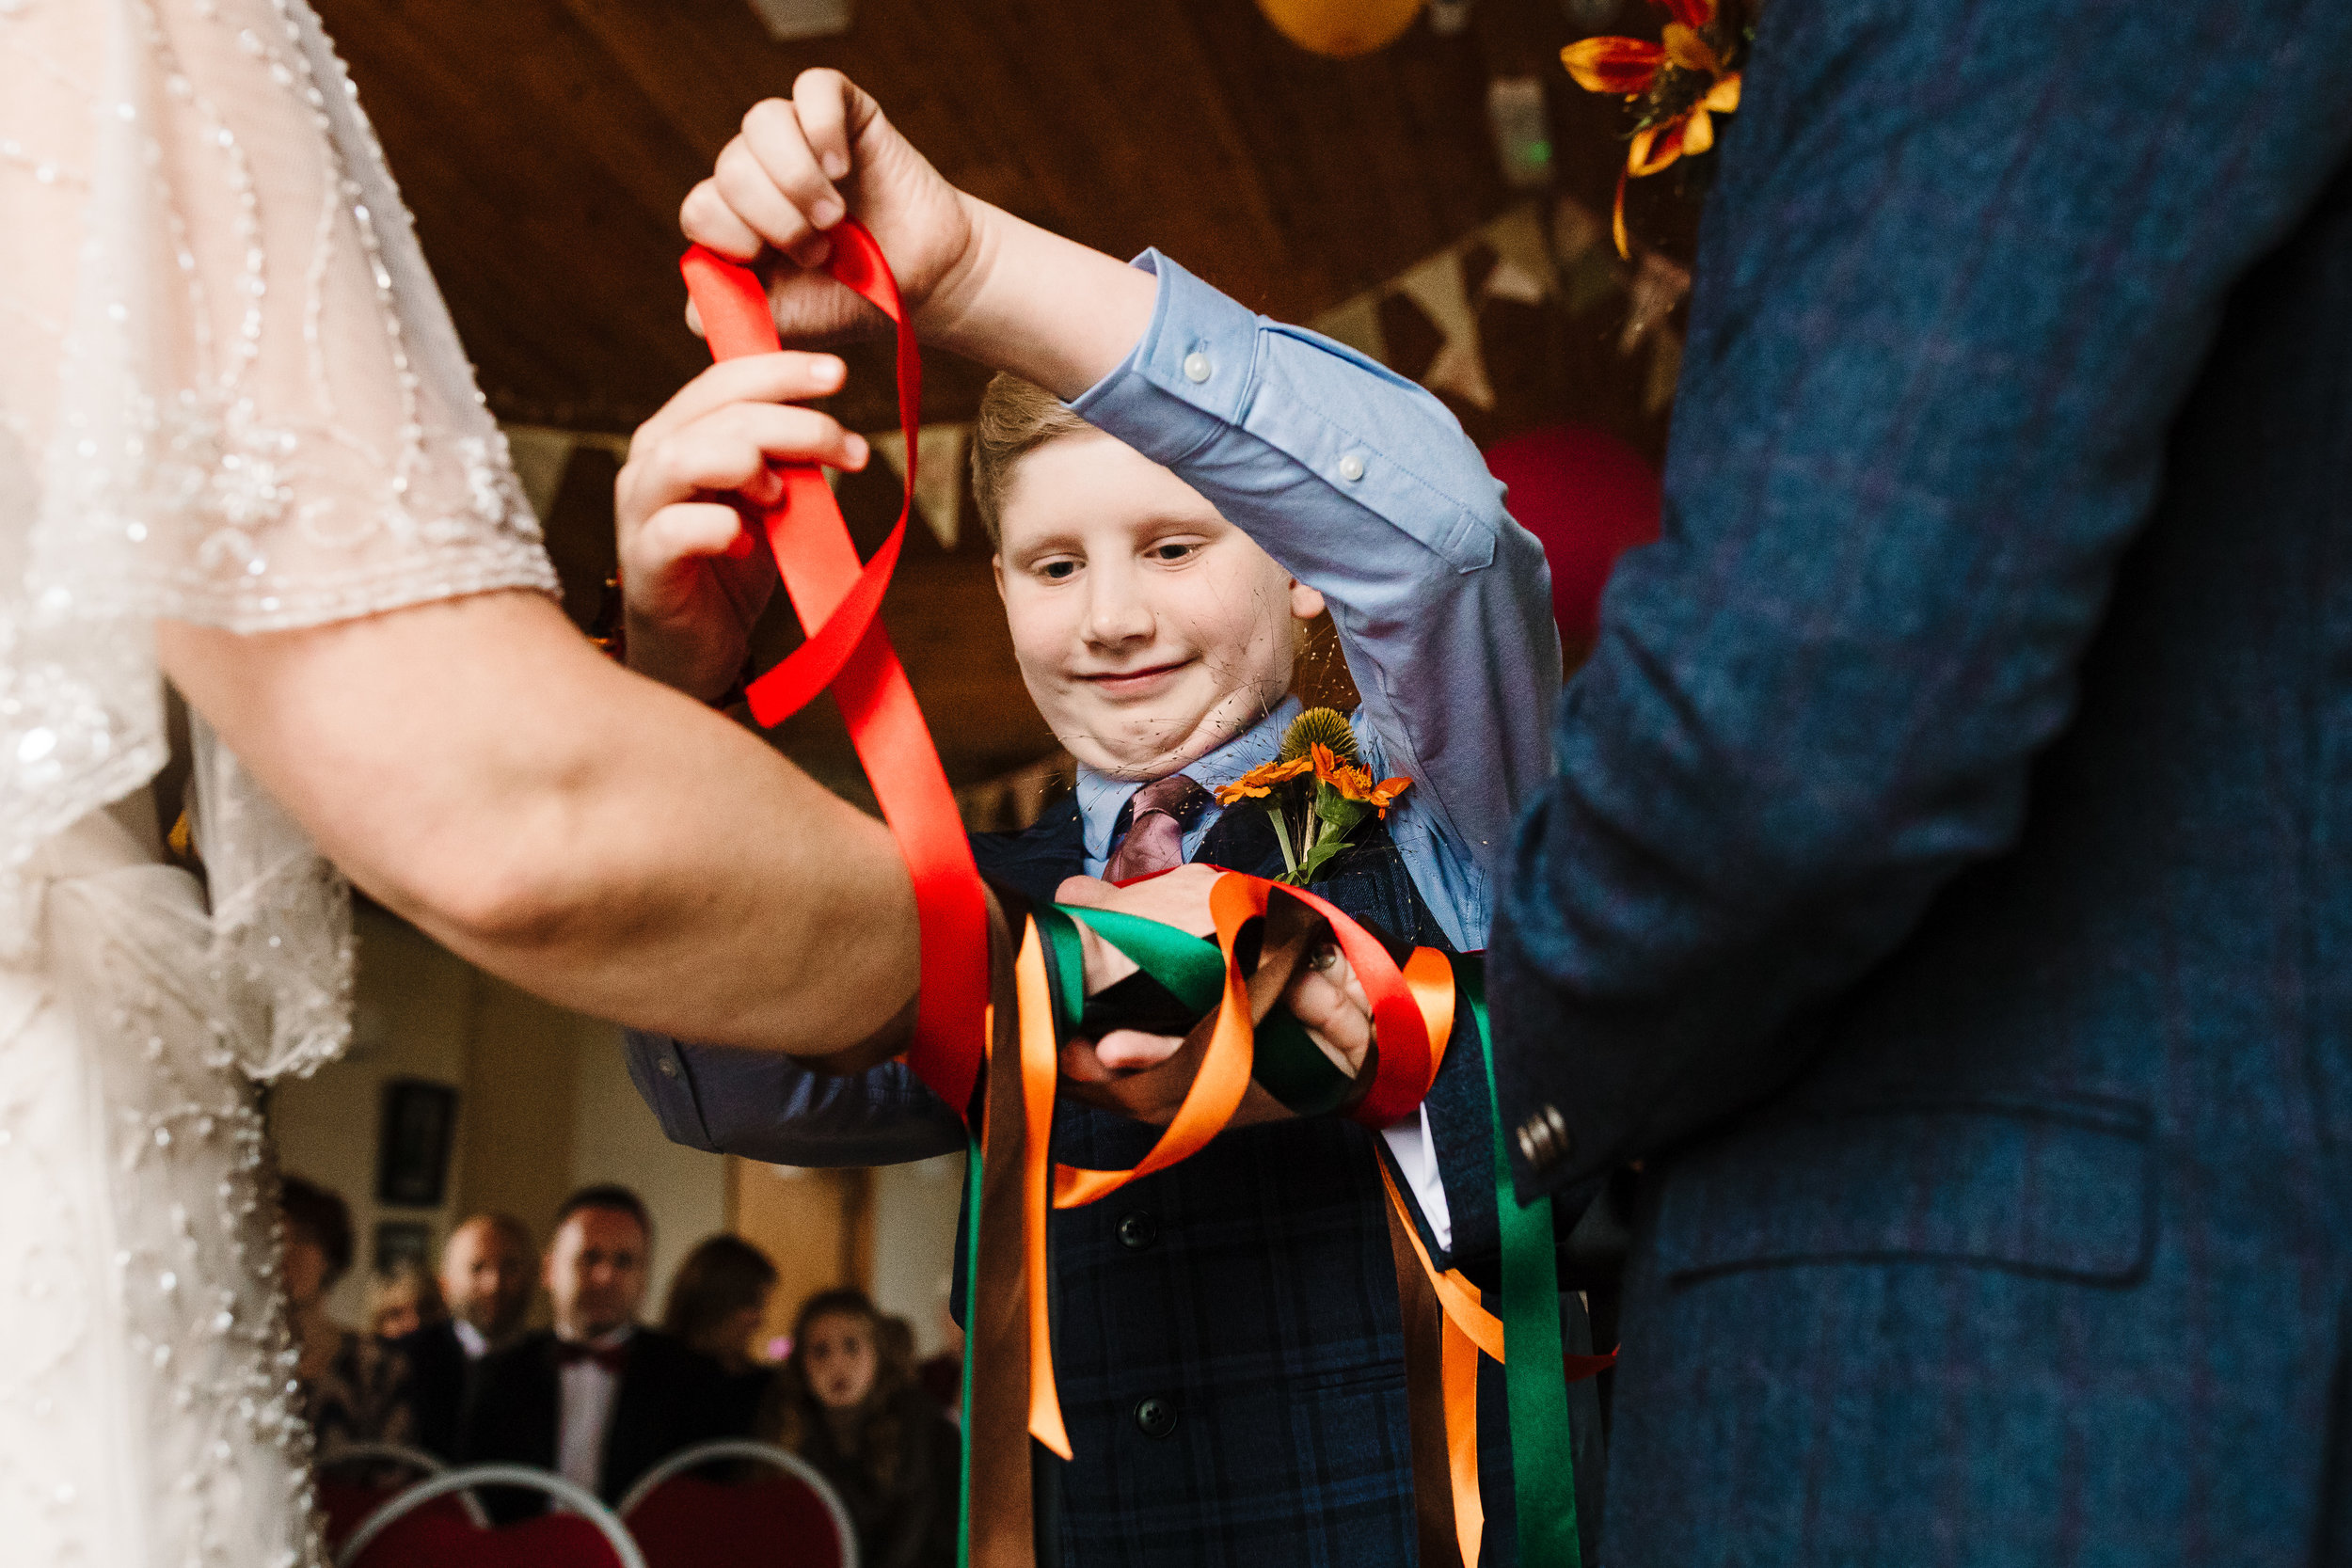 A young lad wrapping colourful ribbon around the bride and groom's hands in an alternative hand fasting ceremony in Yorkshire